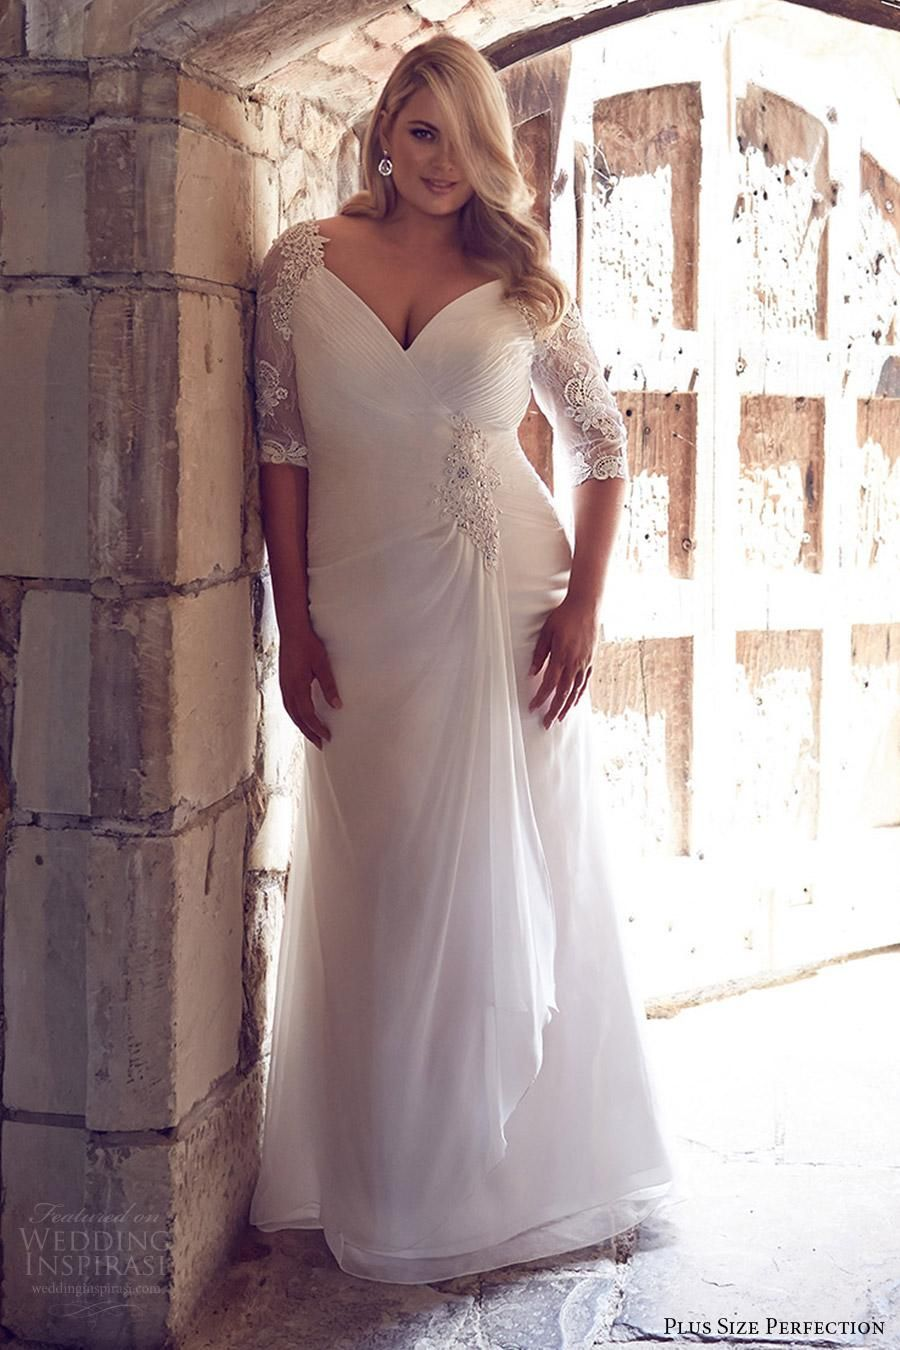 Pin By Divas Llc On Saty Plus Size Wedding Dresses With Sleeves Full Figured Bride Wedding Dresses Under 500 [ 1350 x 900 Pixel ]